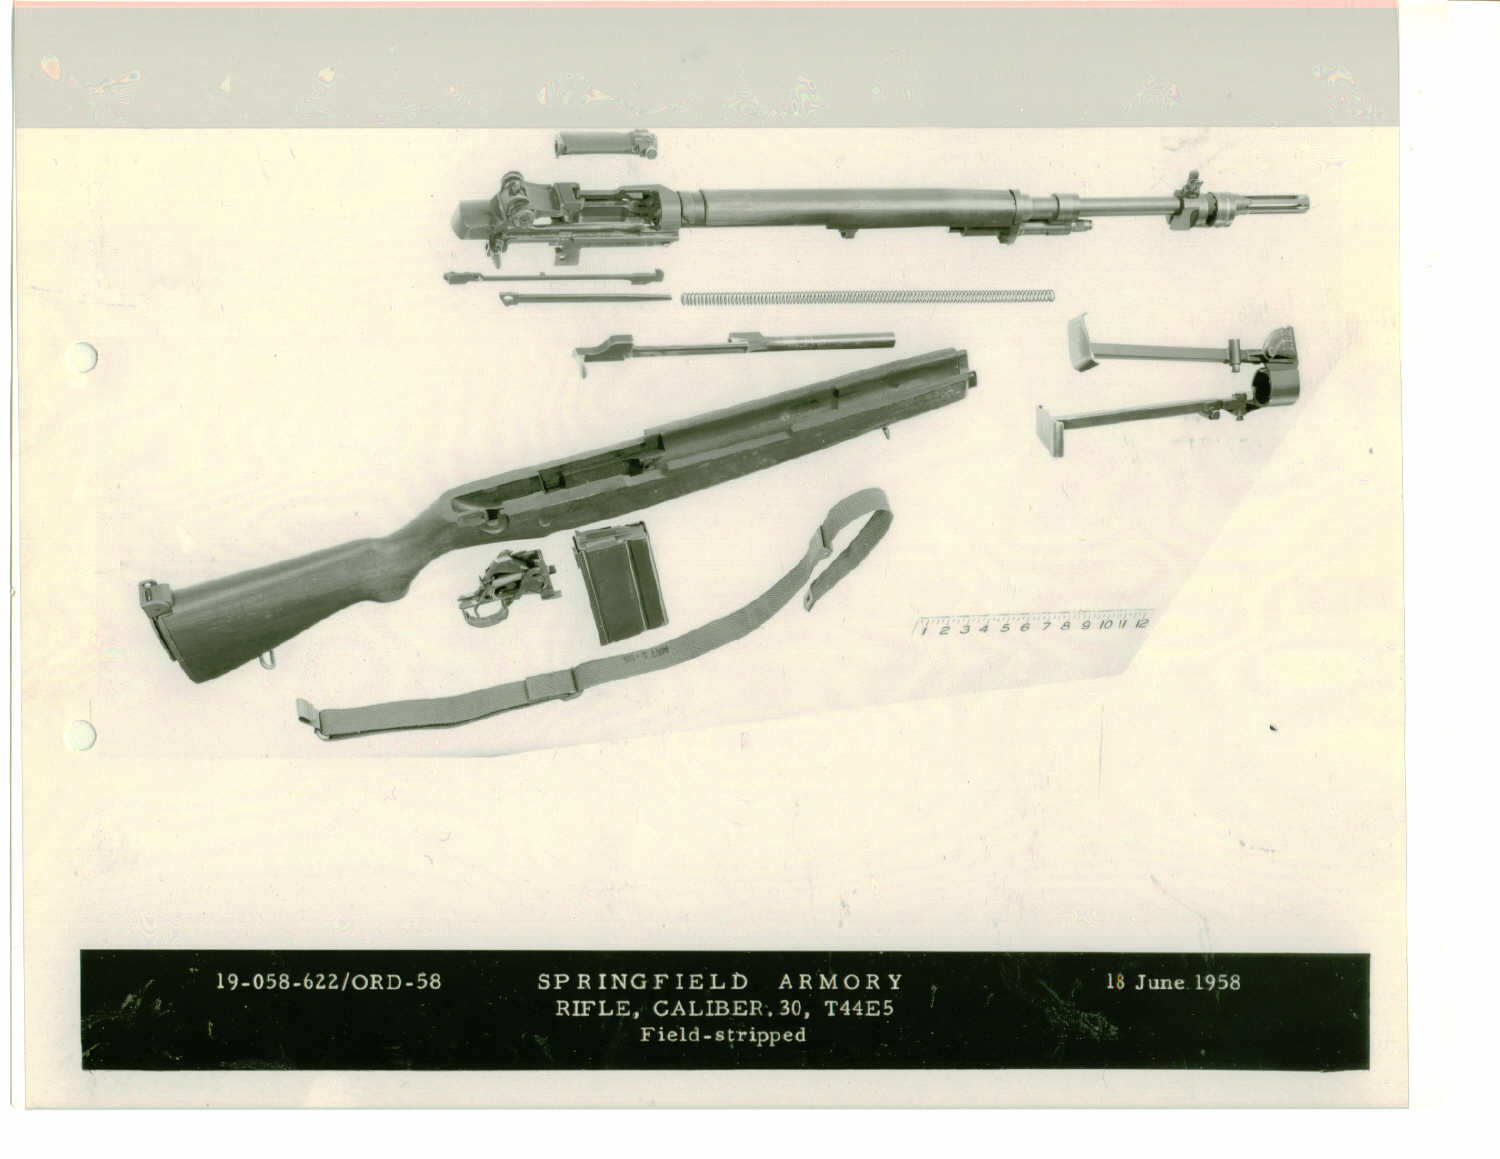 Springfield Armory Museum - Archival Items Search Results